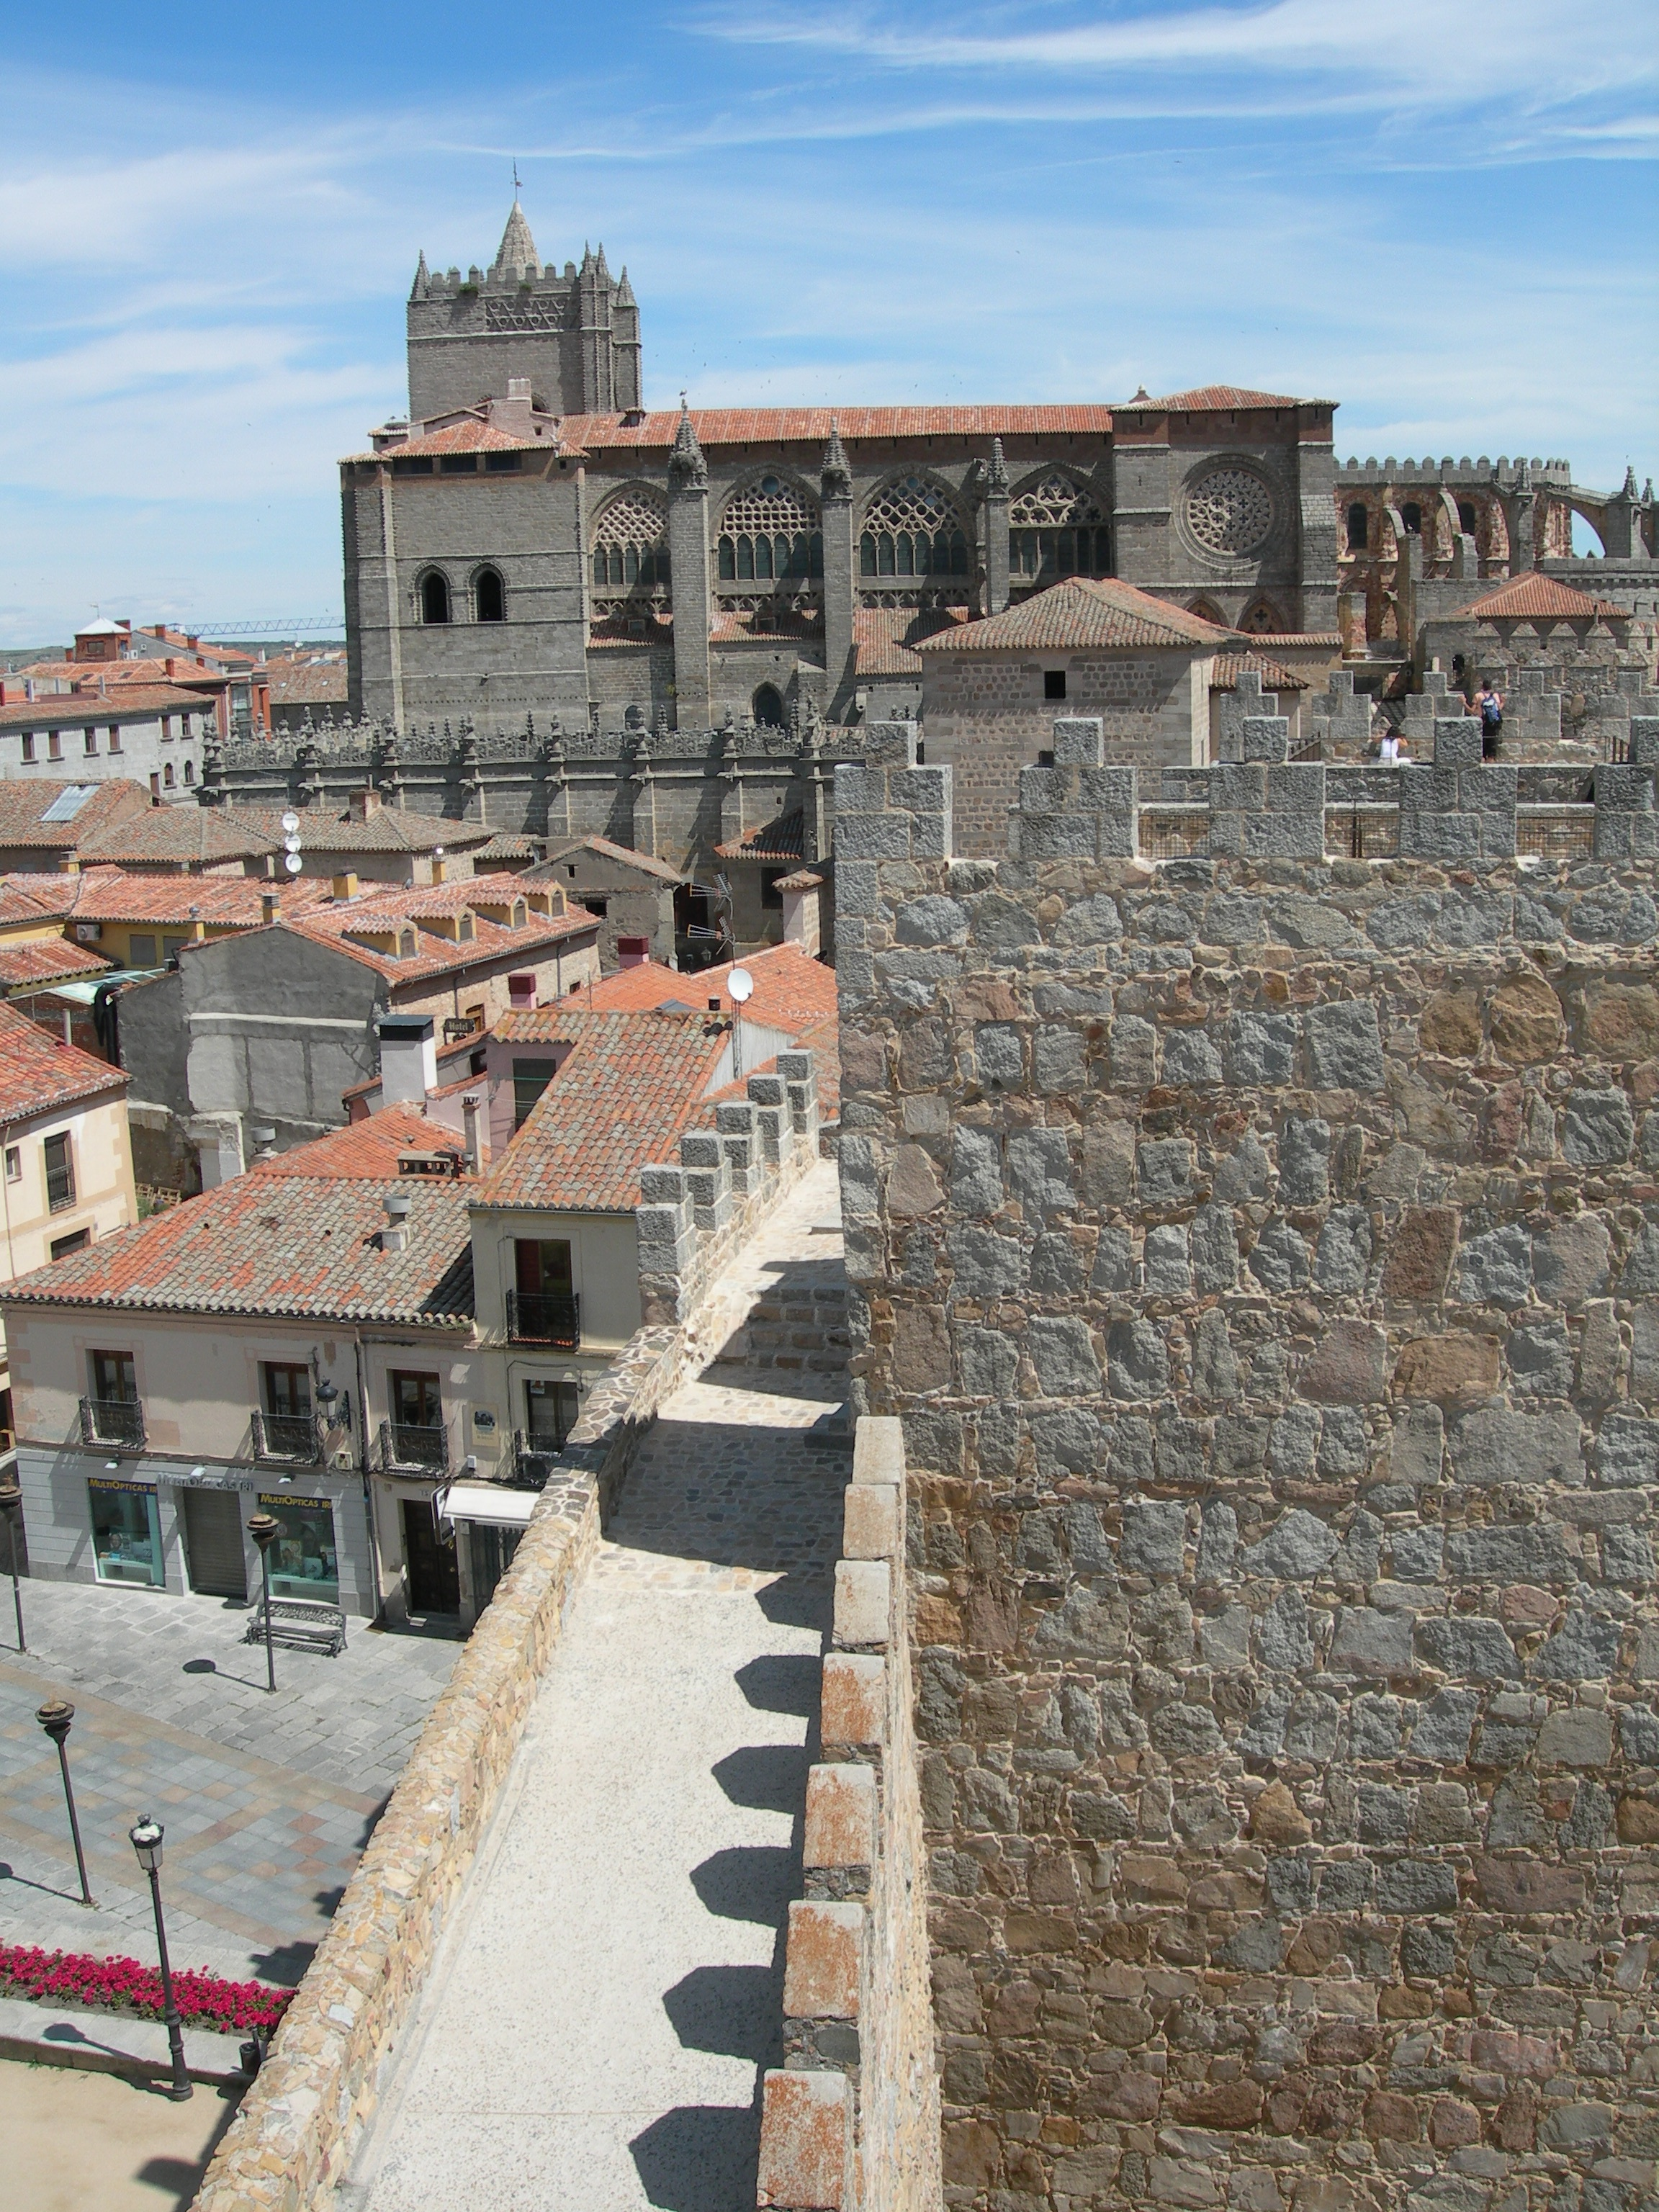 FIGURE 8. The cathedral of Ávila, as seen from the medieval city walls. Photo by Byron Hamann.